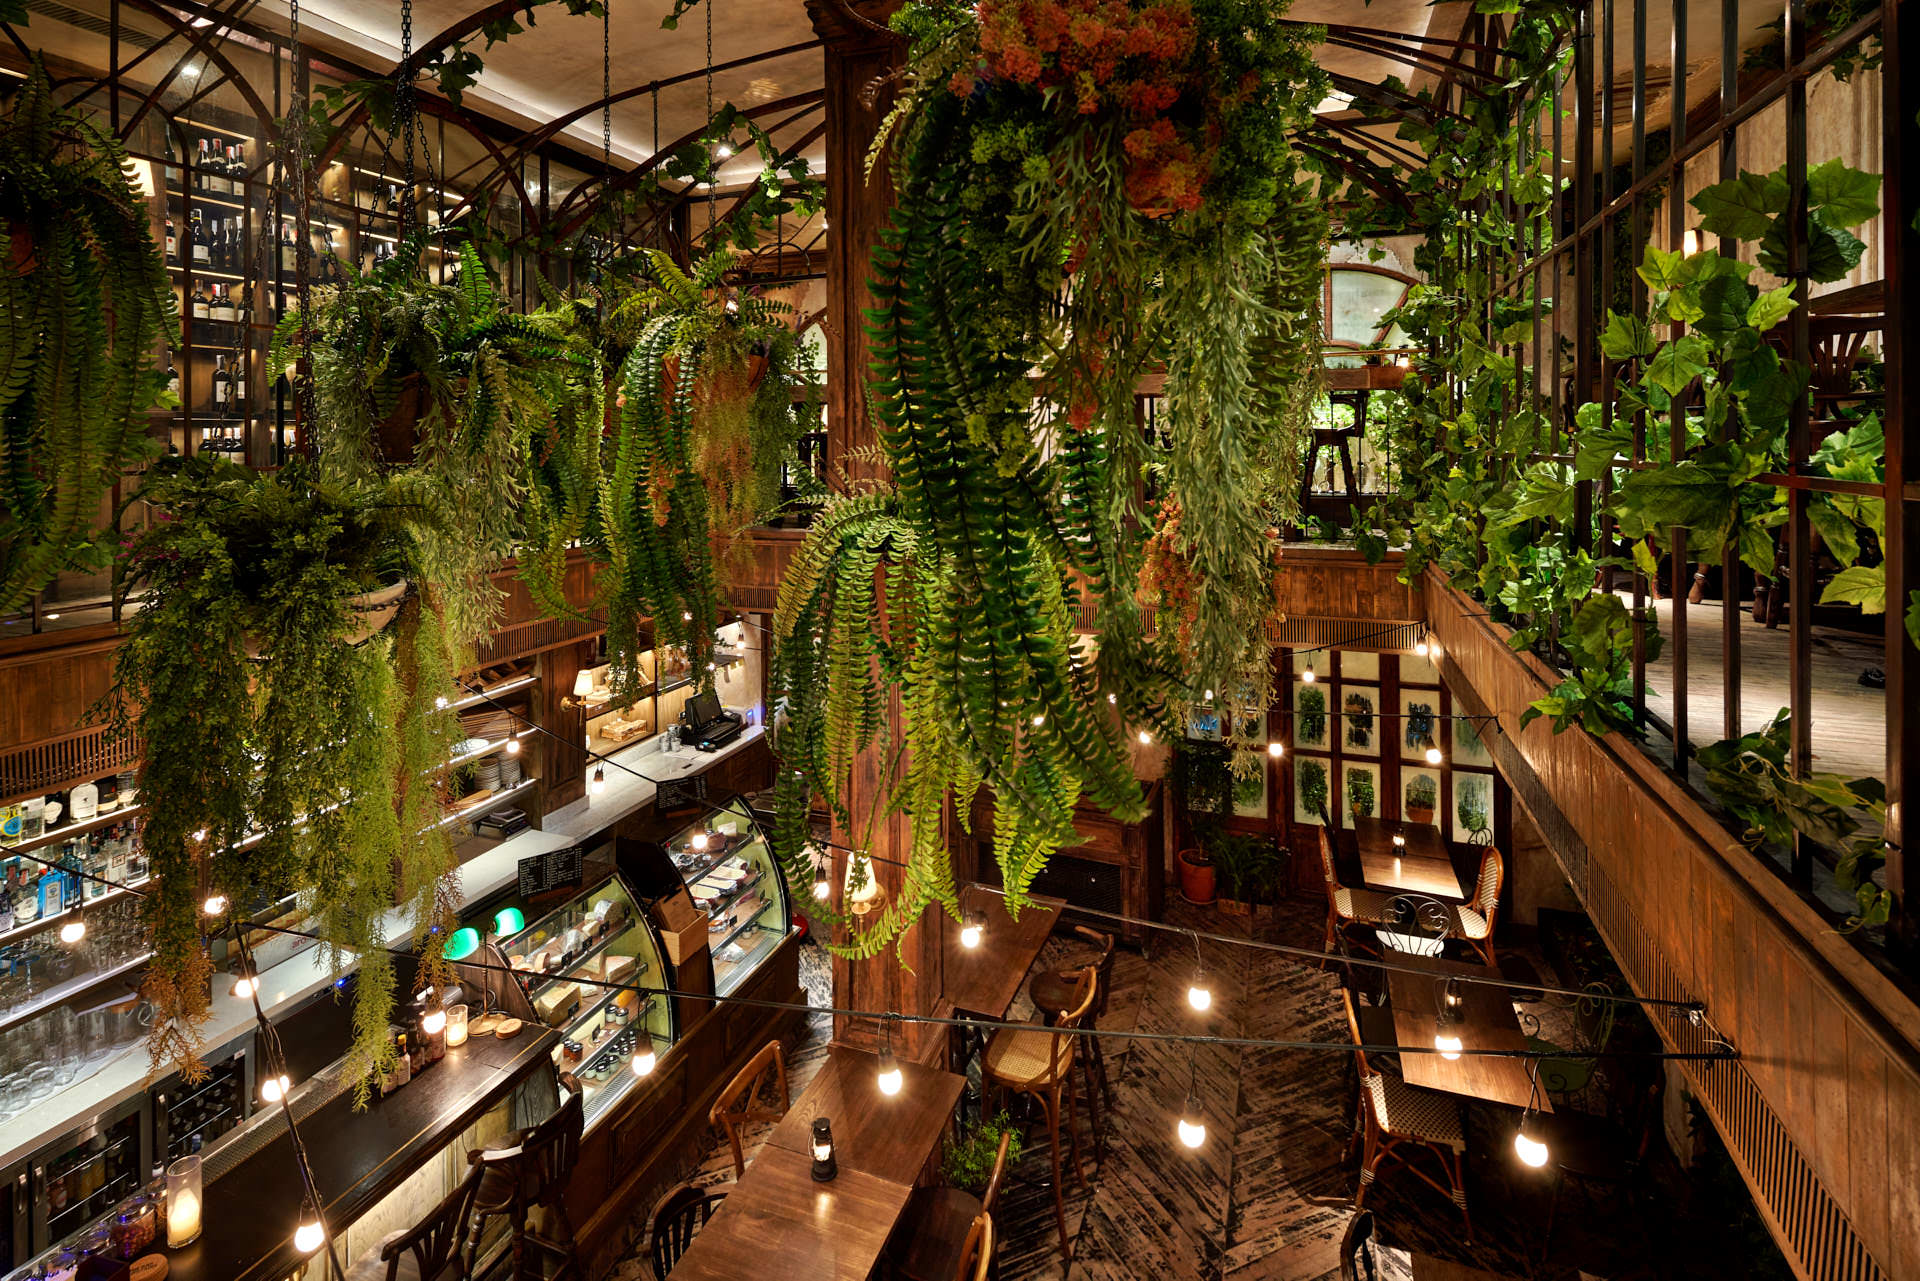 Interior design photography of the mezzanine with green plants hanging over the seating area below